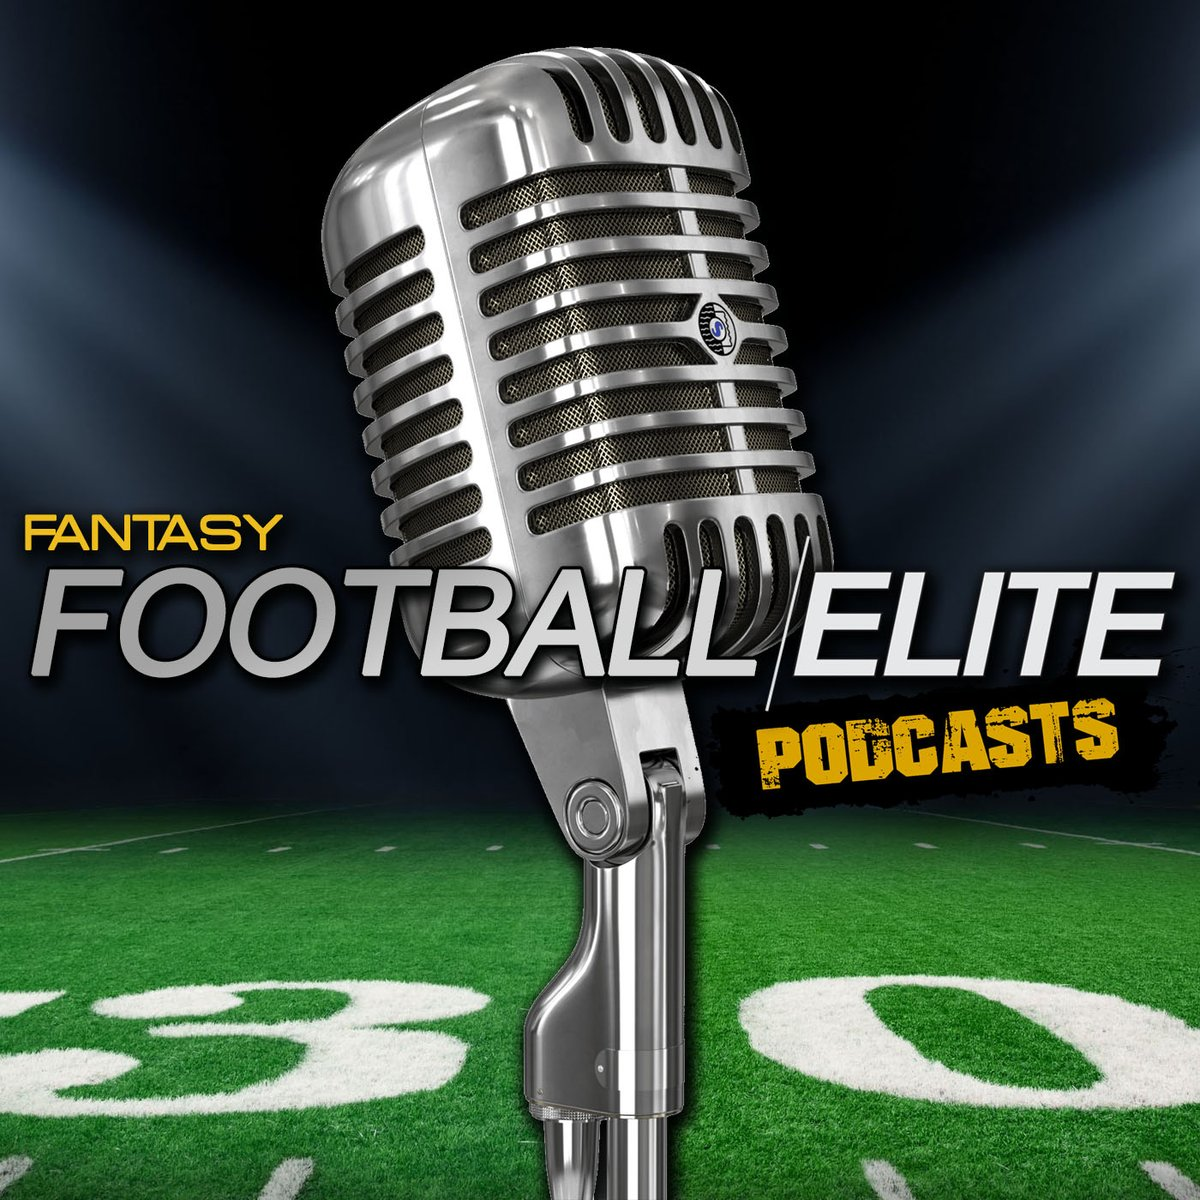 The guys @footballdiehard & @md_1010xl are at it again. They discuss injuries, expected game scripts, and players who should be in your lineups as well as those who shouldn't in Week 3, on the latest #NFL Game Preview Podcast. #FantasyFootball   https://t.co/1FG8QGWxHW https://t.co/dUdabQQYm2